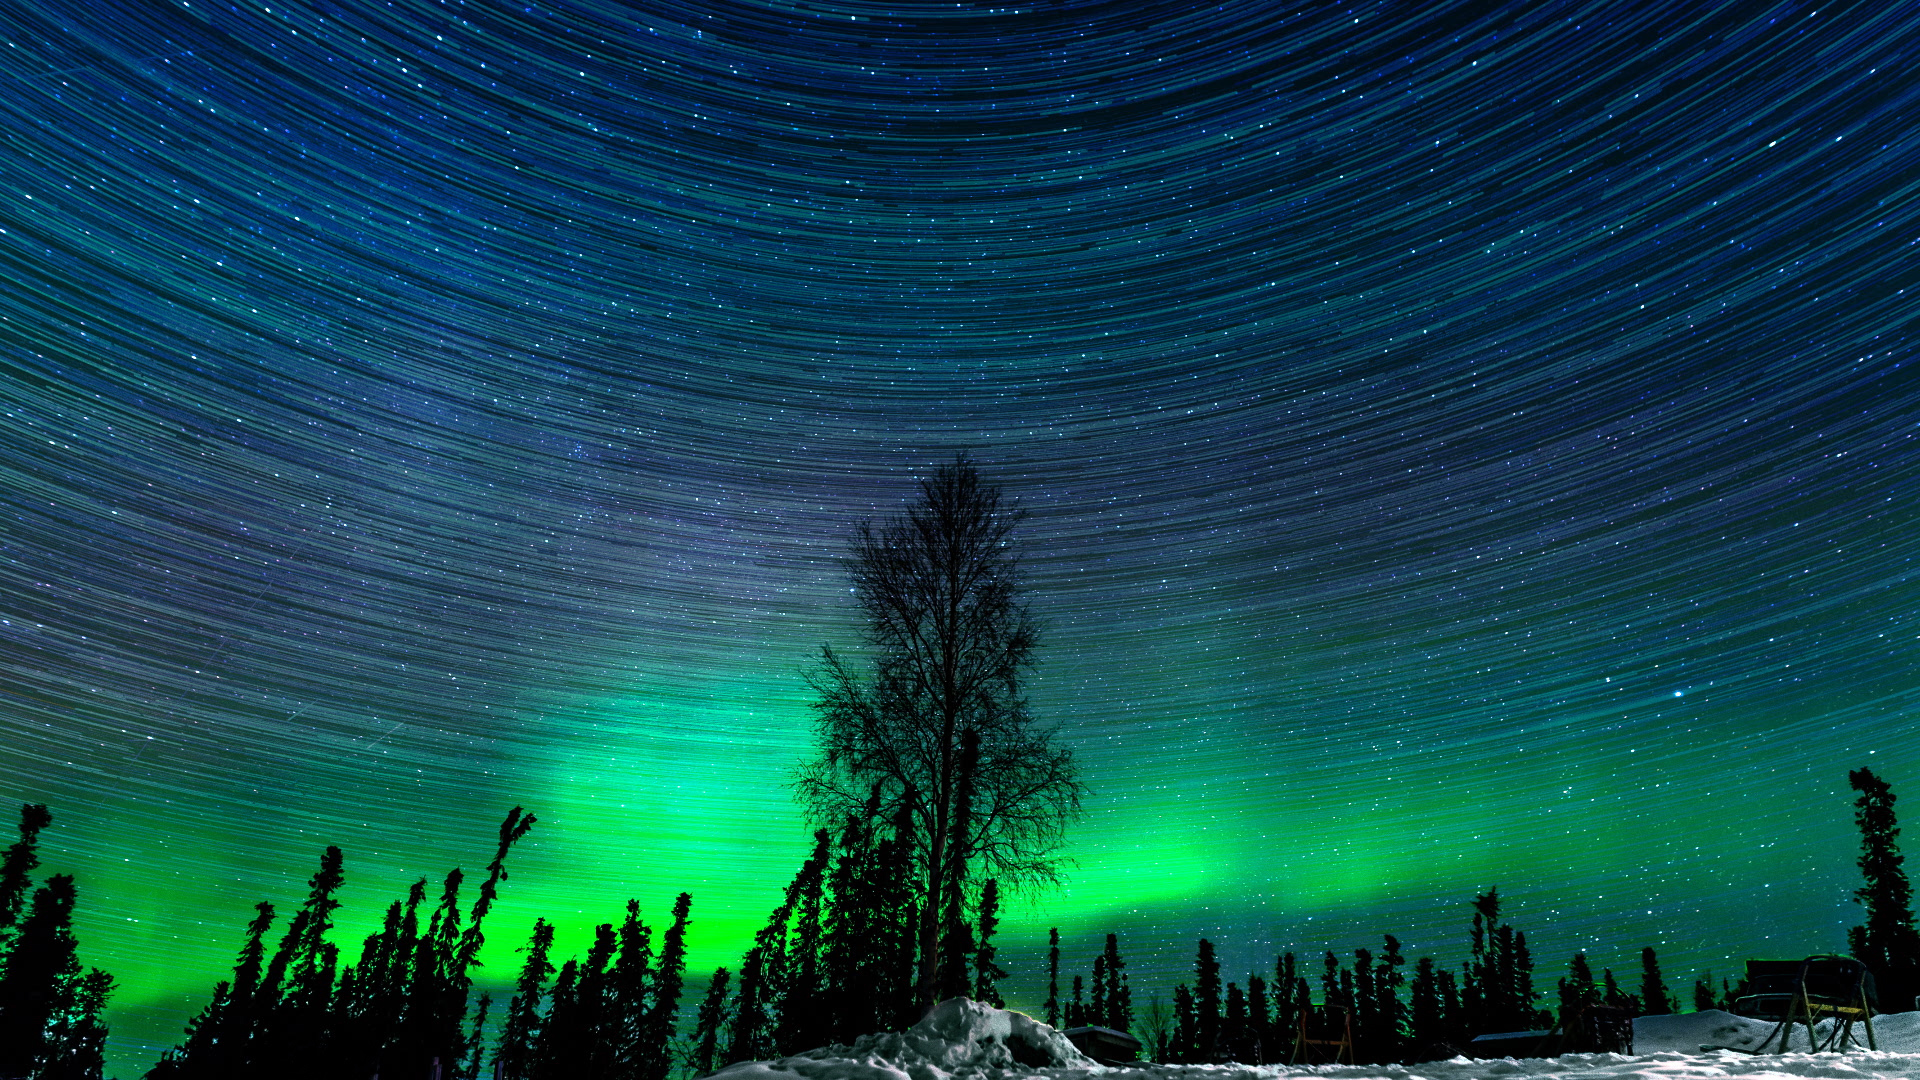 Night sky time lapse photography Time-lapse photography - Wikipedia